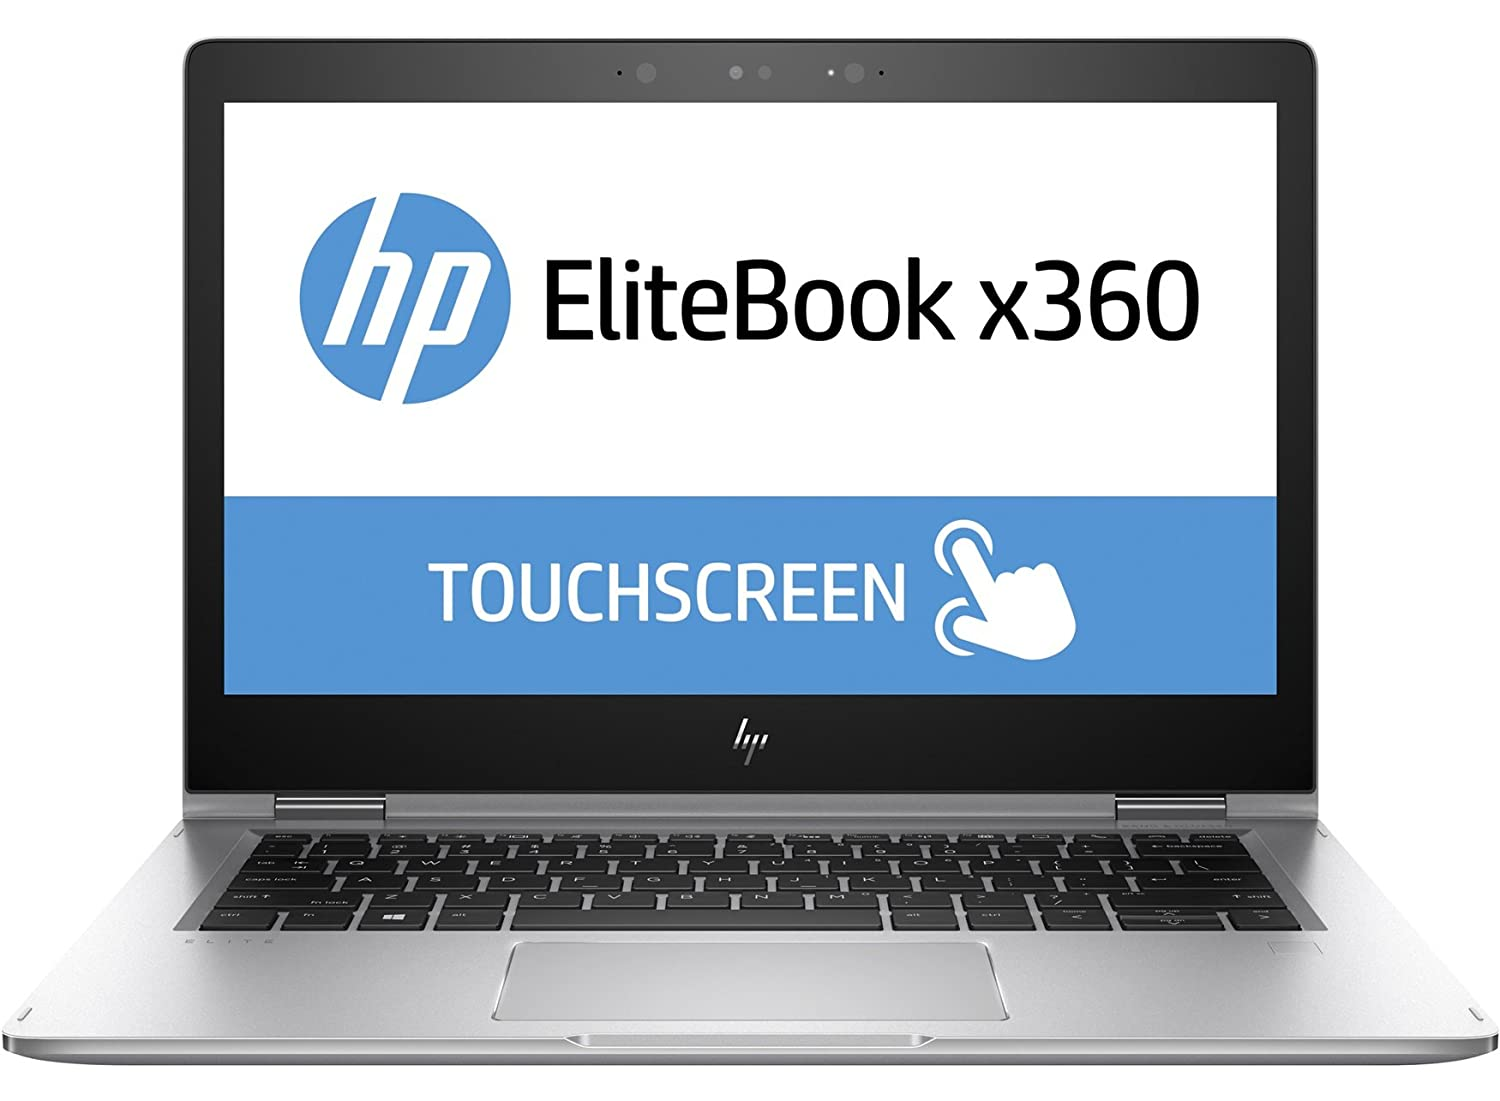 HP ELITEBOOK X360 1030 I5-7200USYST 256GB 8GB 13.3 FHD HSPA W10P SP